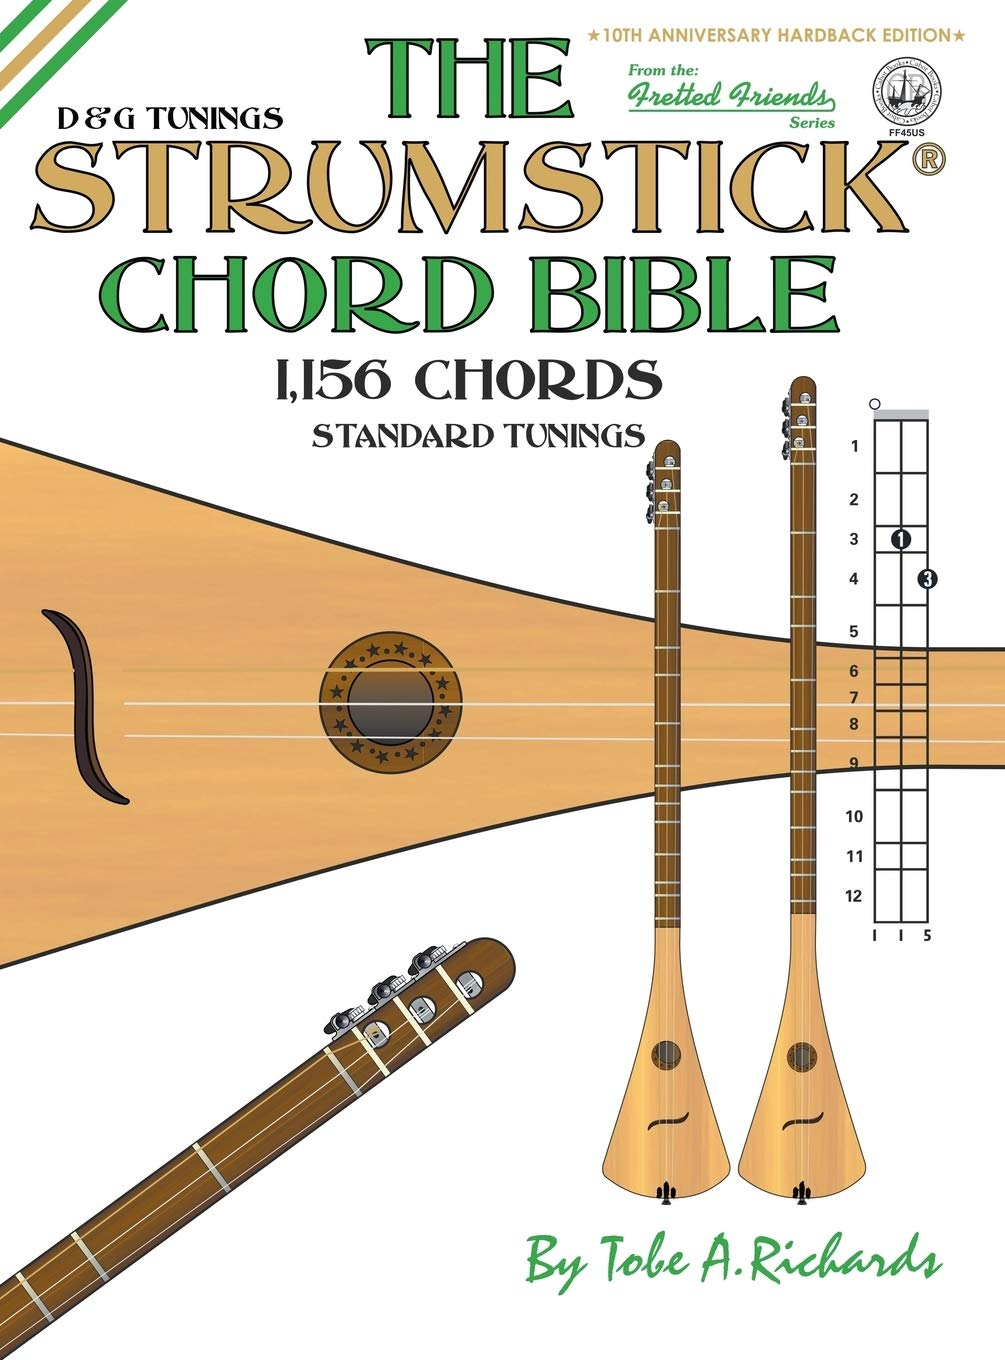 The Strumstick Chord Bible: D & G Tunings 1,156 Chords Fretted ...